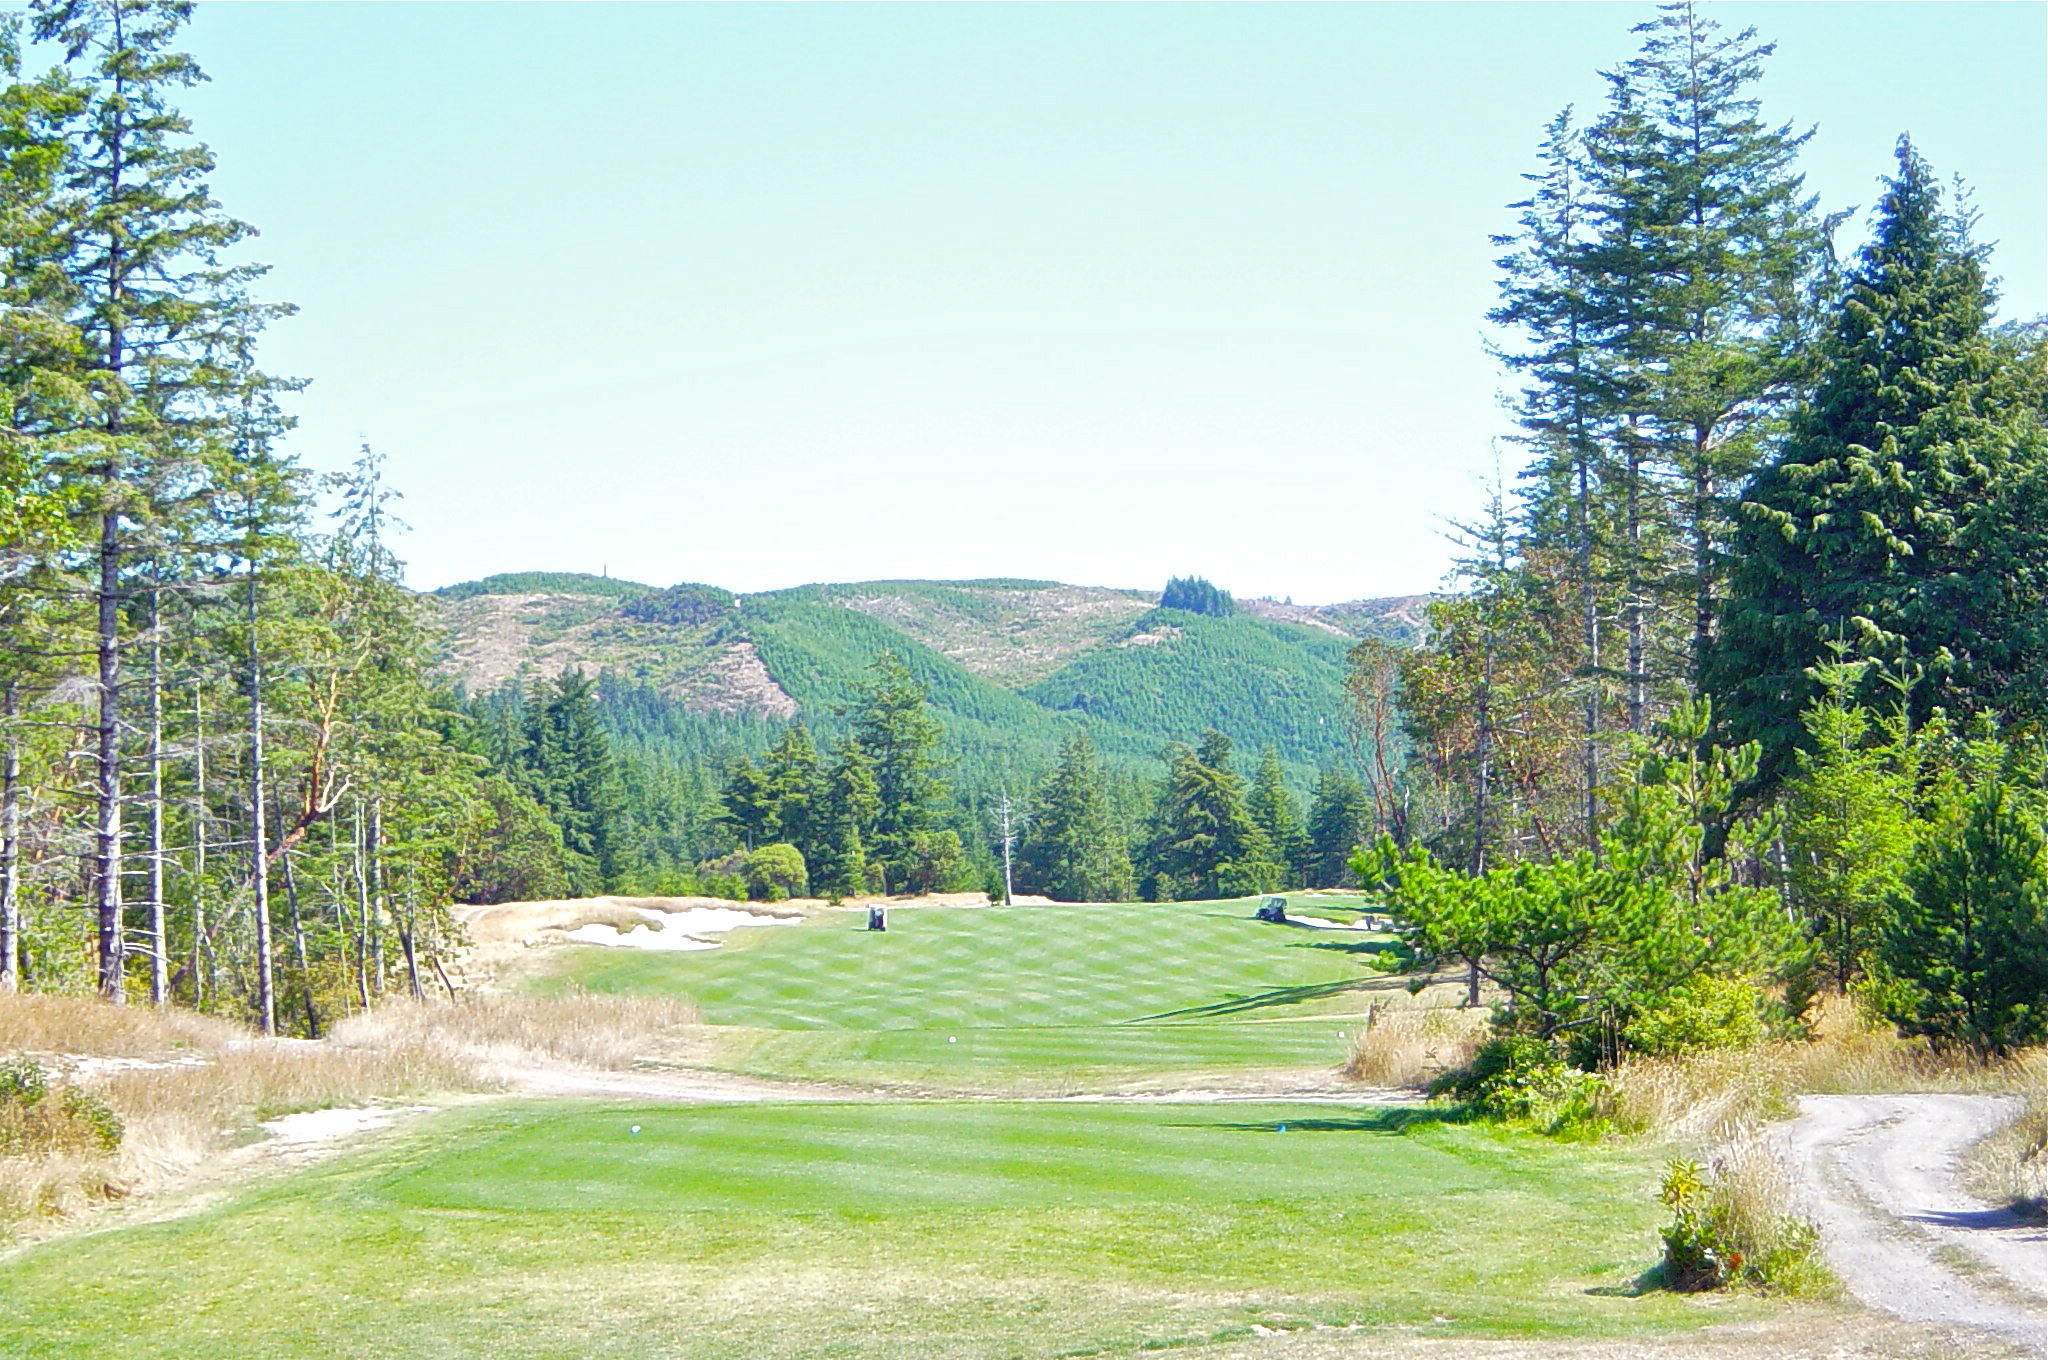 Bandon crossings golf course cover picture